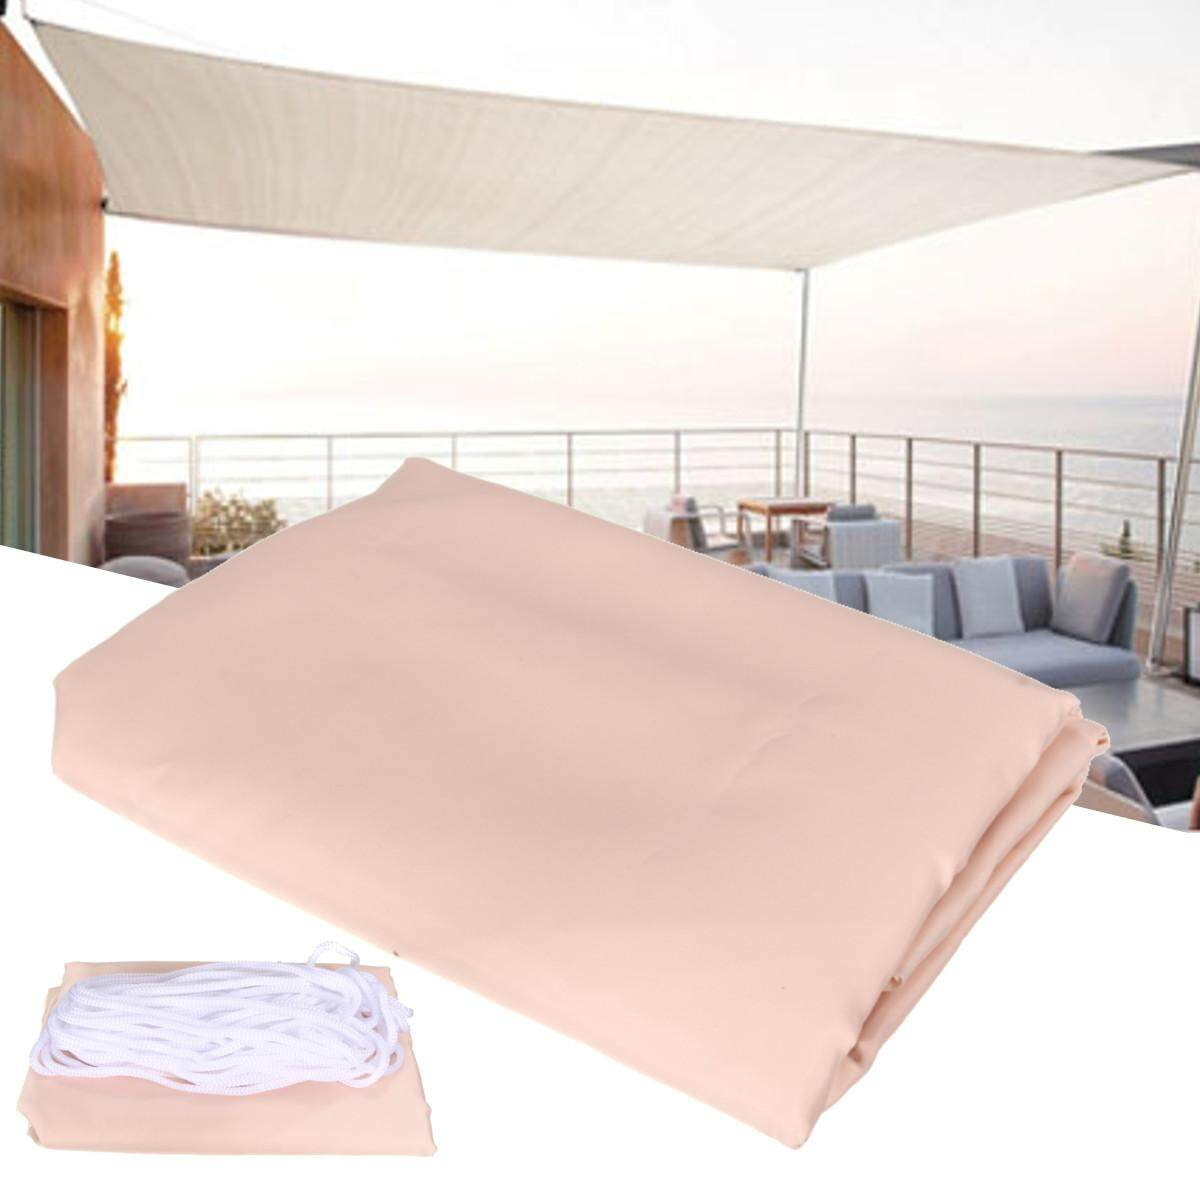 OUTDOOR TOP SUN ShADE SAIL SHRLTER GARDEN CAR COVER AWNING CANOPY PATIO 2.5X2.5M - intl